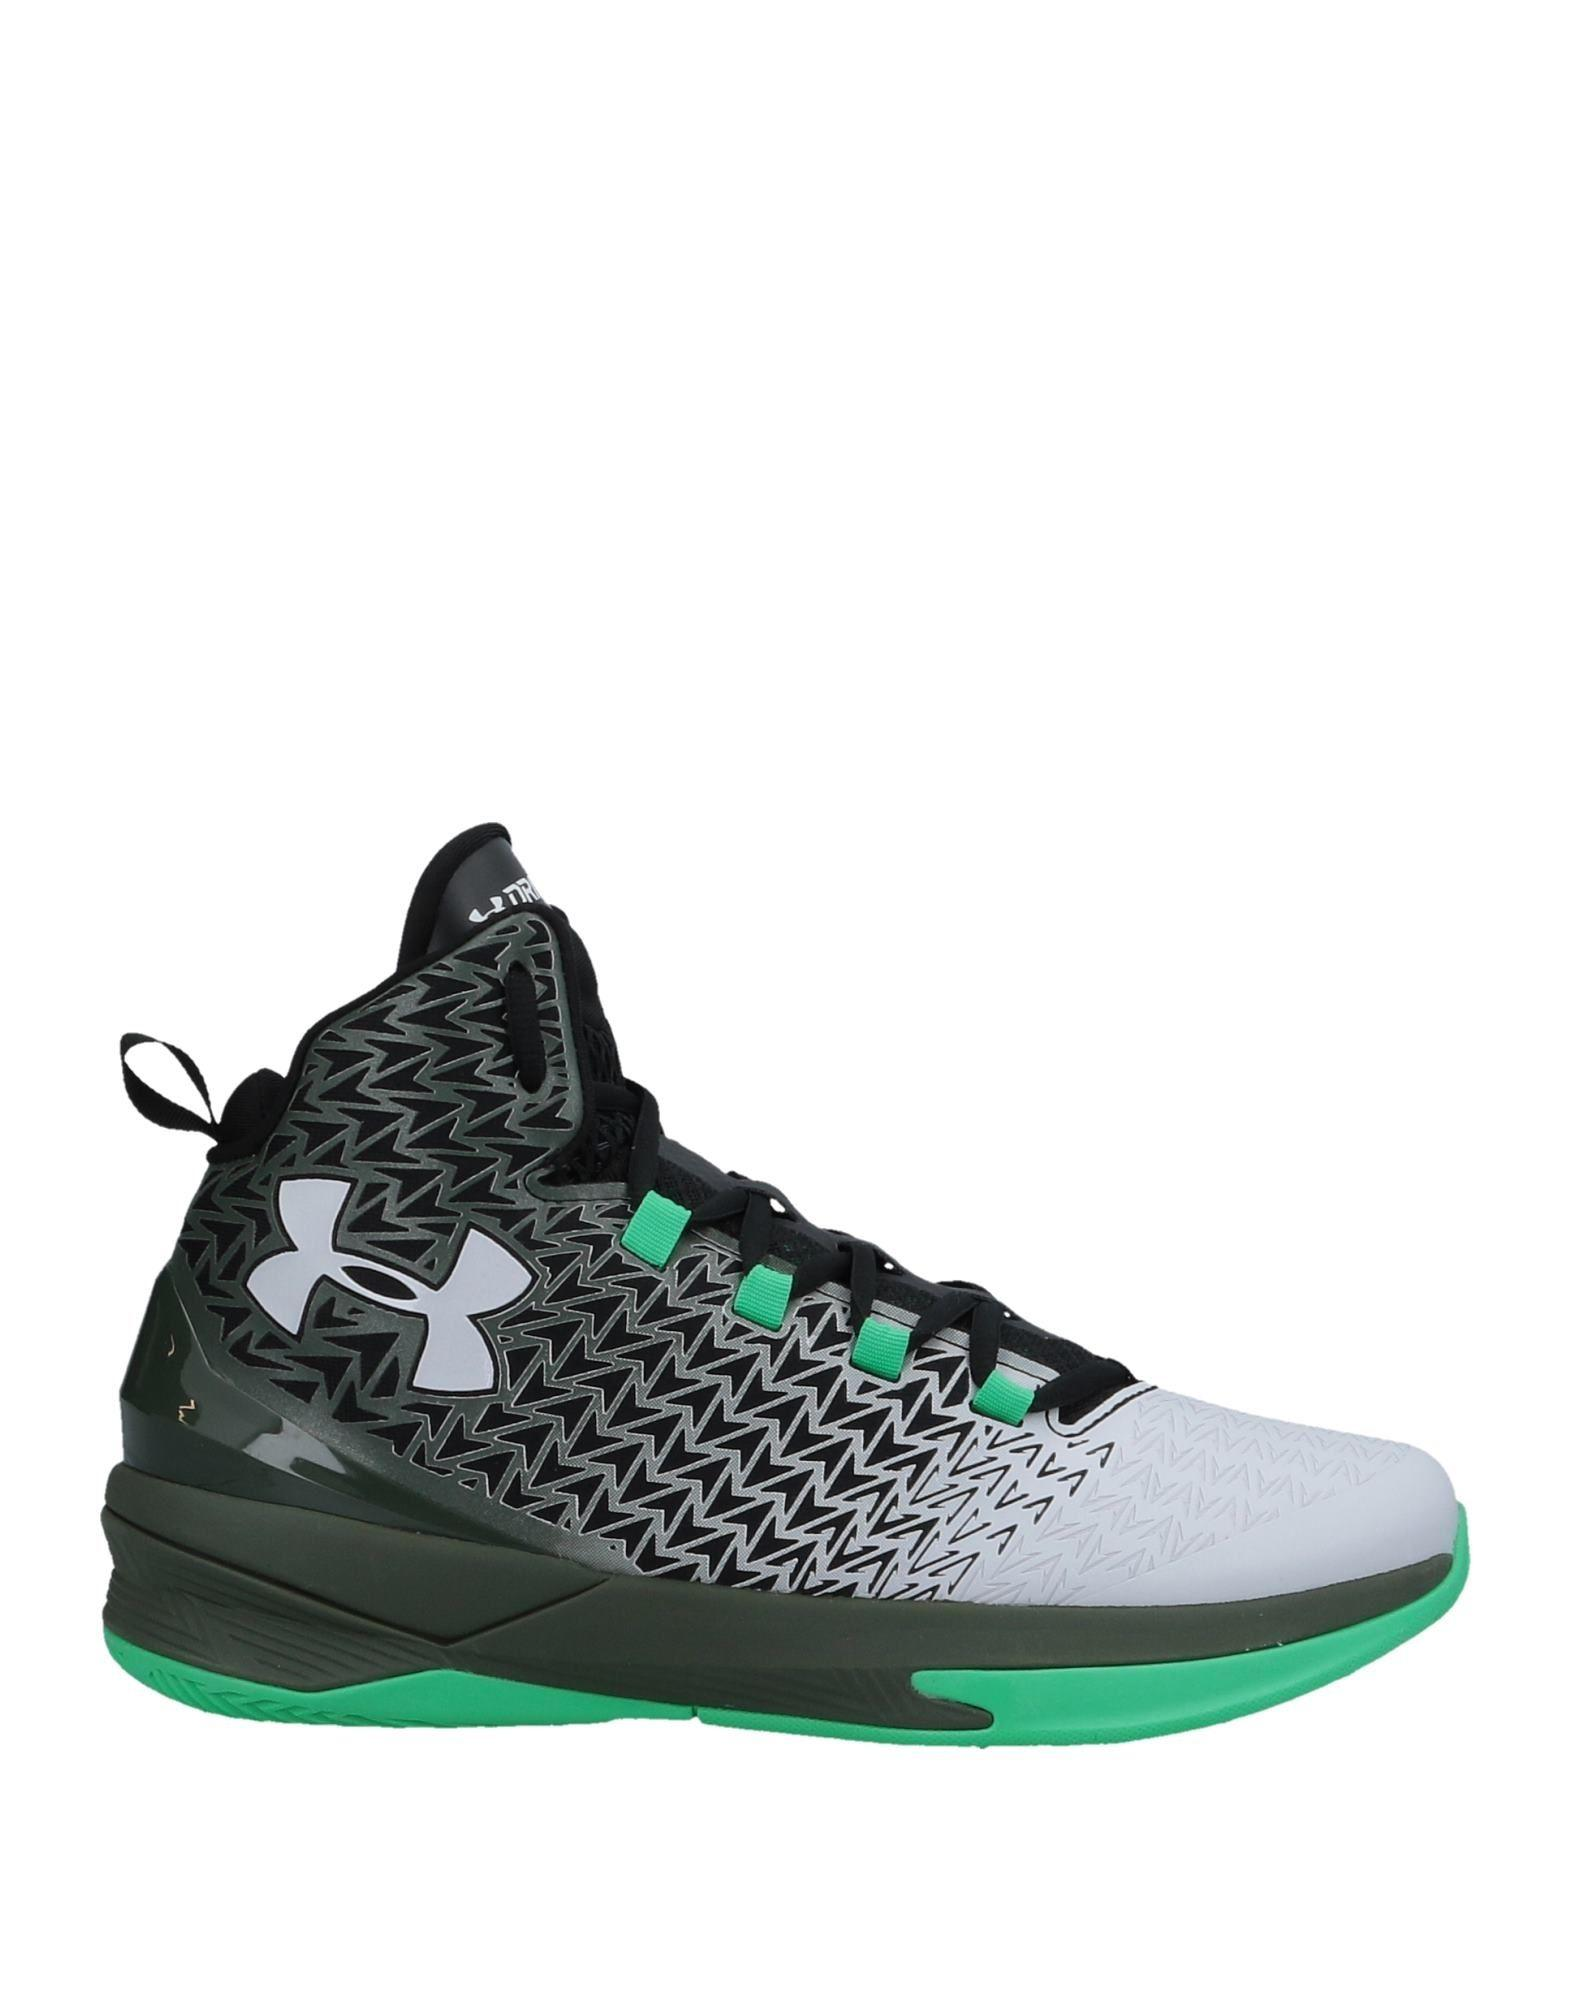 Lyst - Under Armour High-tops   Sneakers in Green for Men a1dc3b840de3